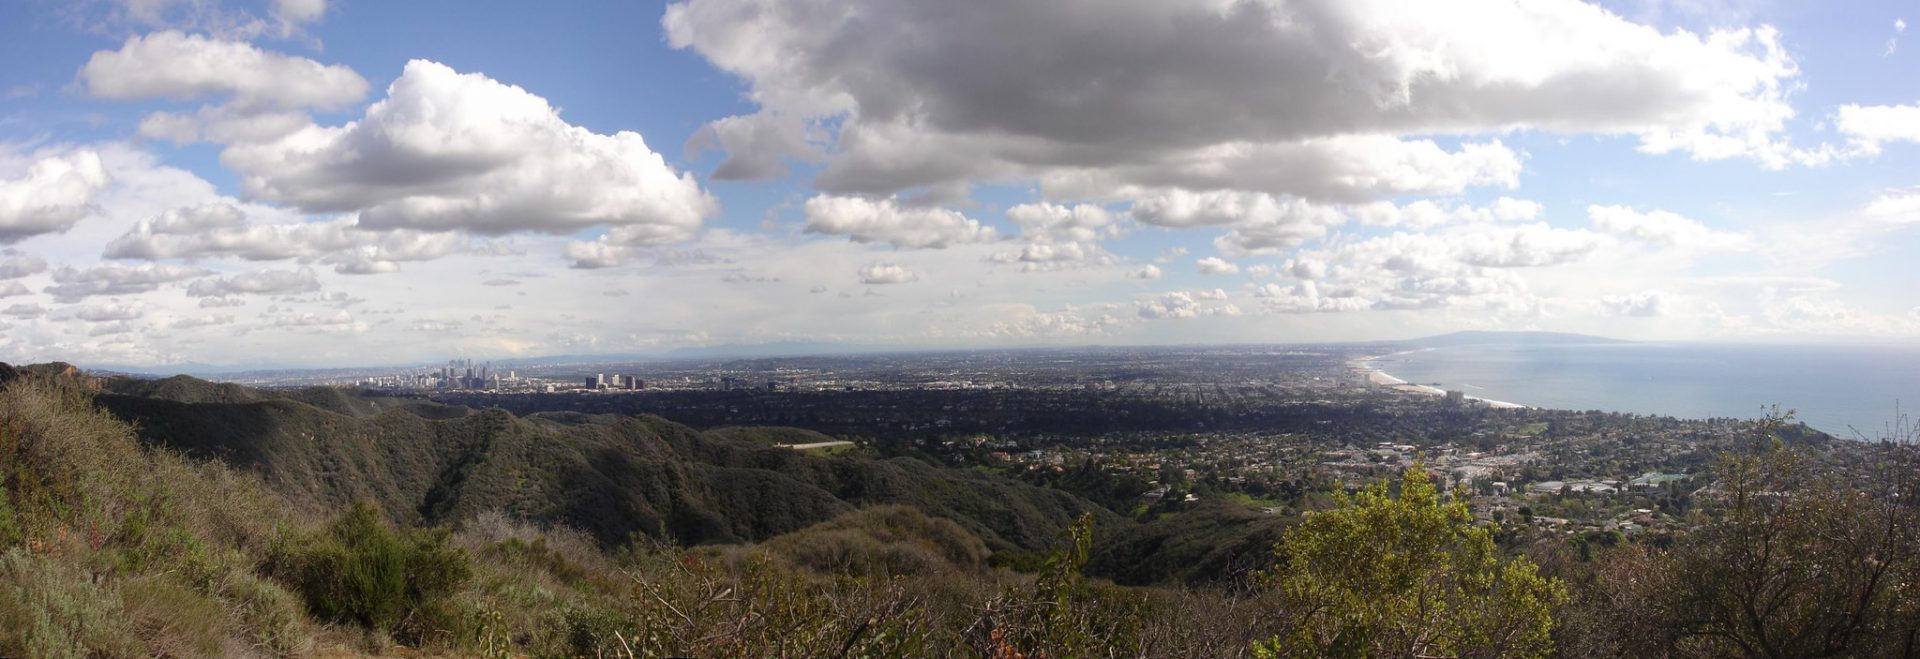 temescal canyon trail hike view